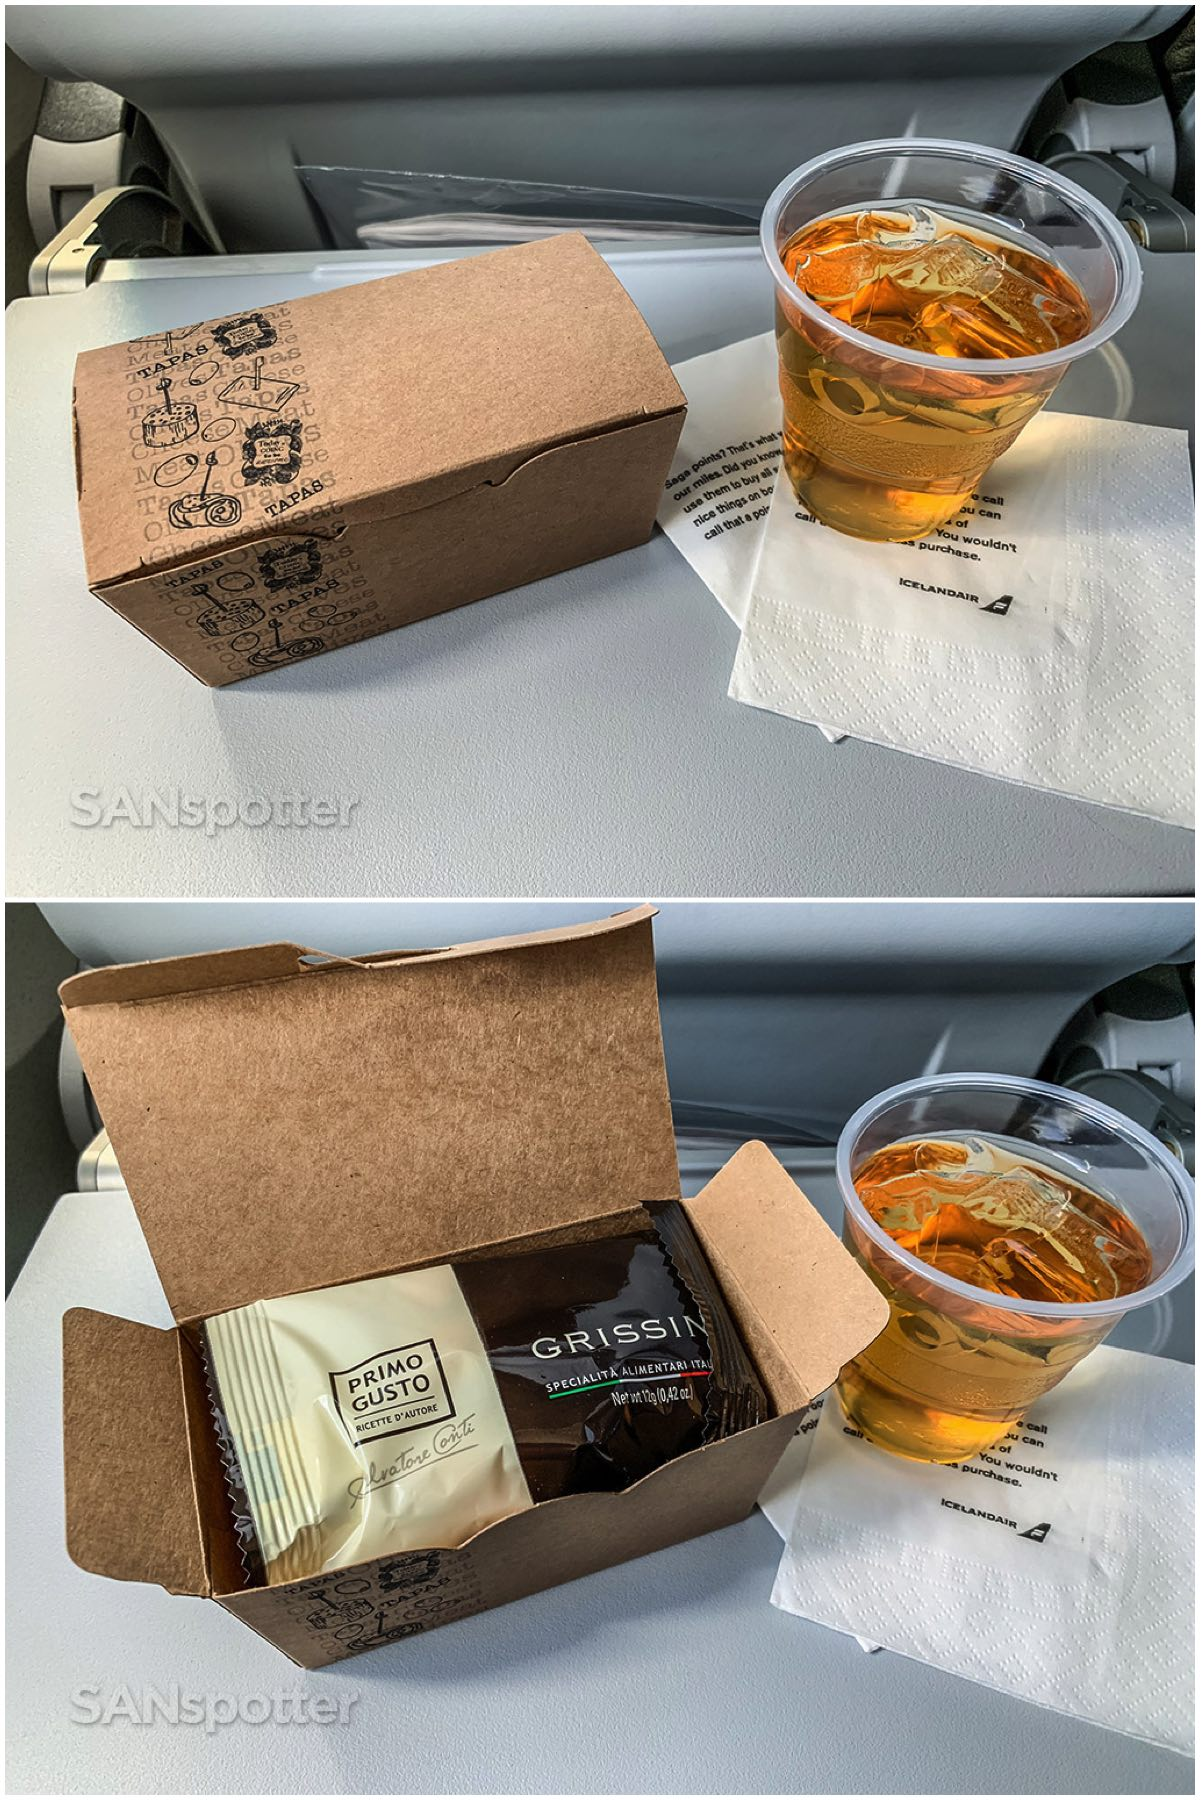 Icelandair snack box